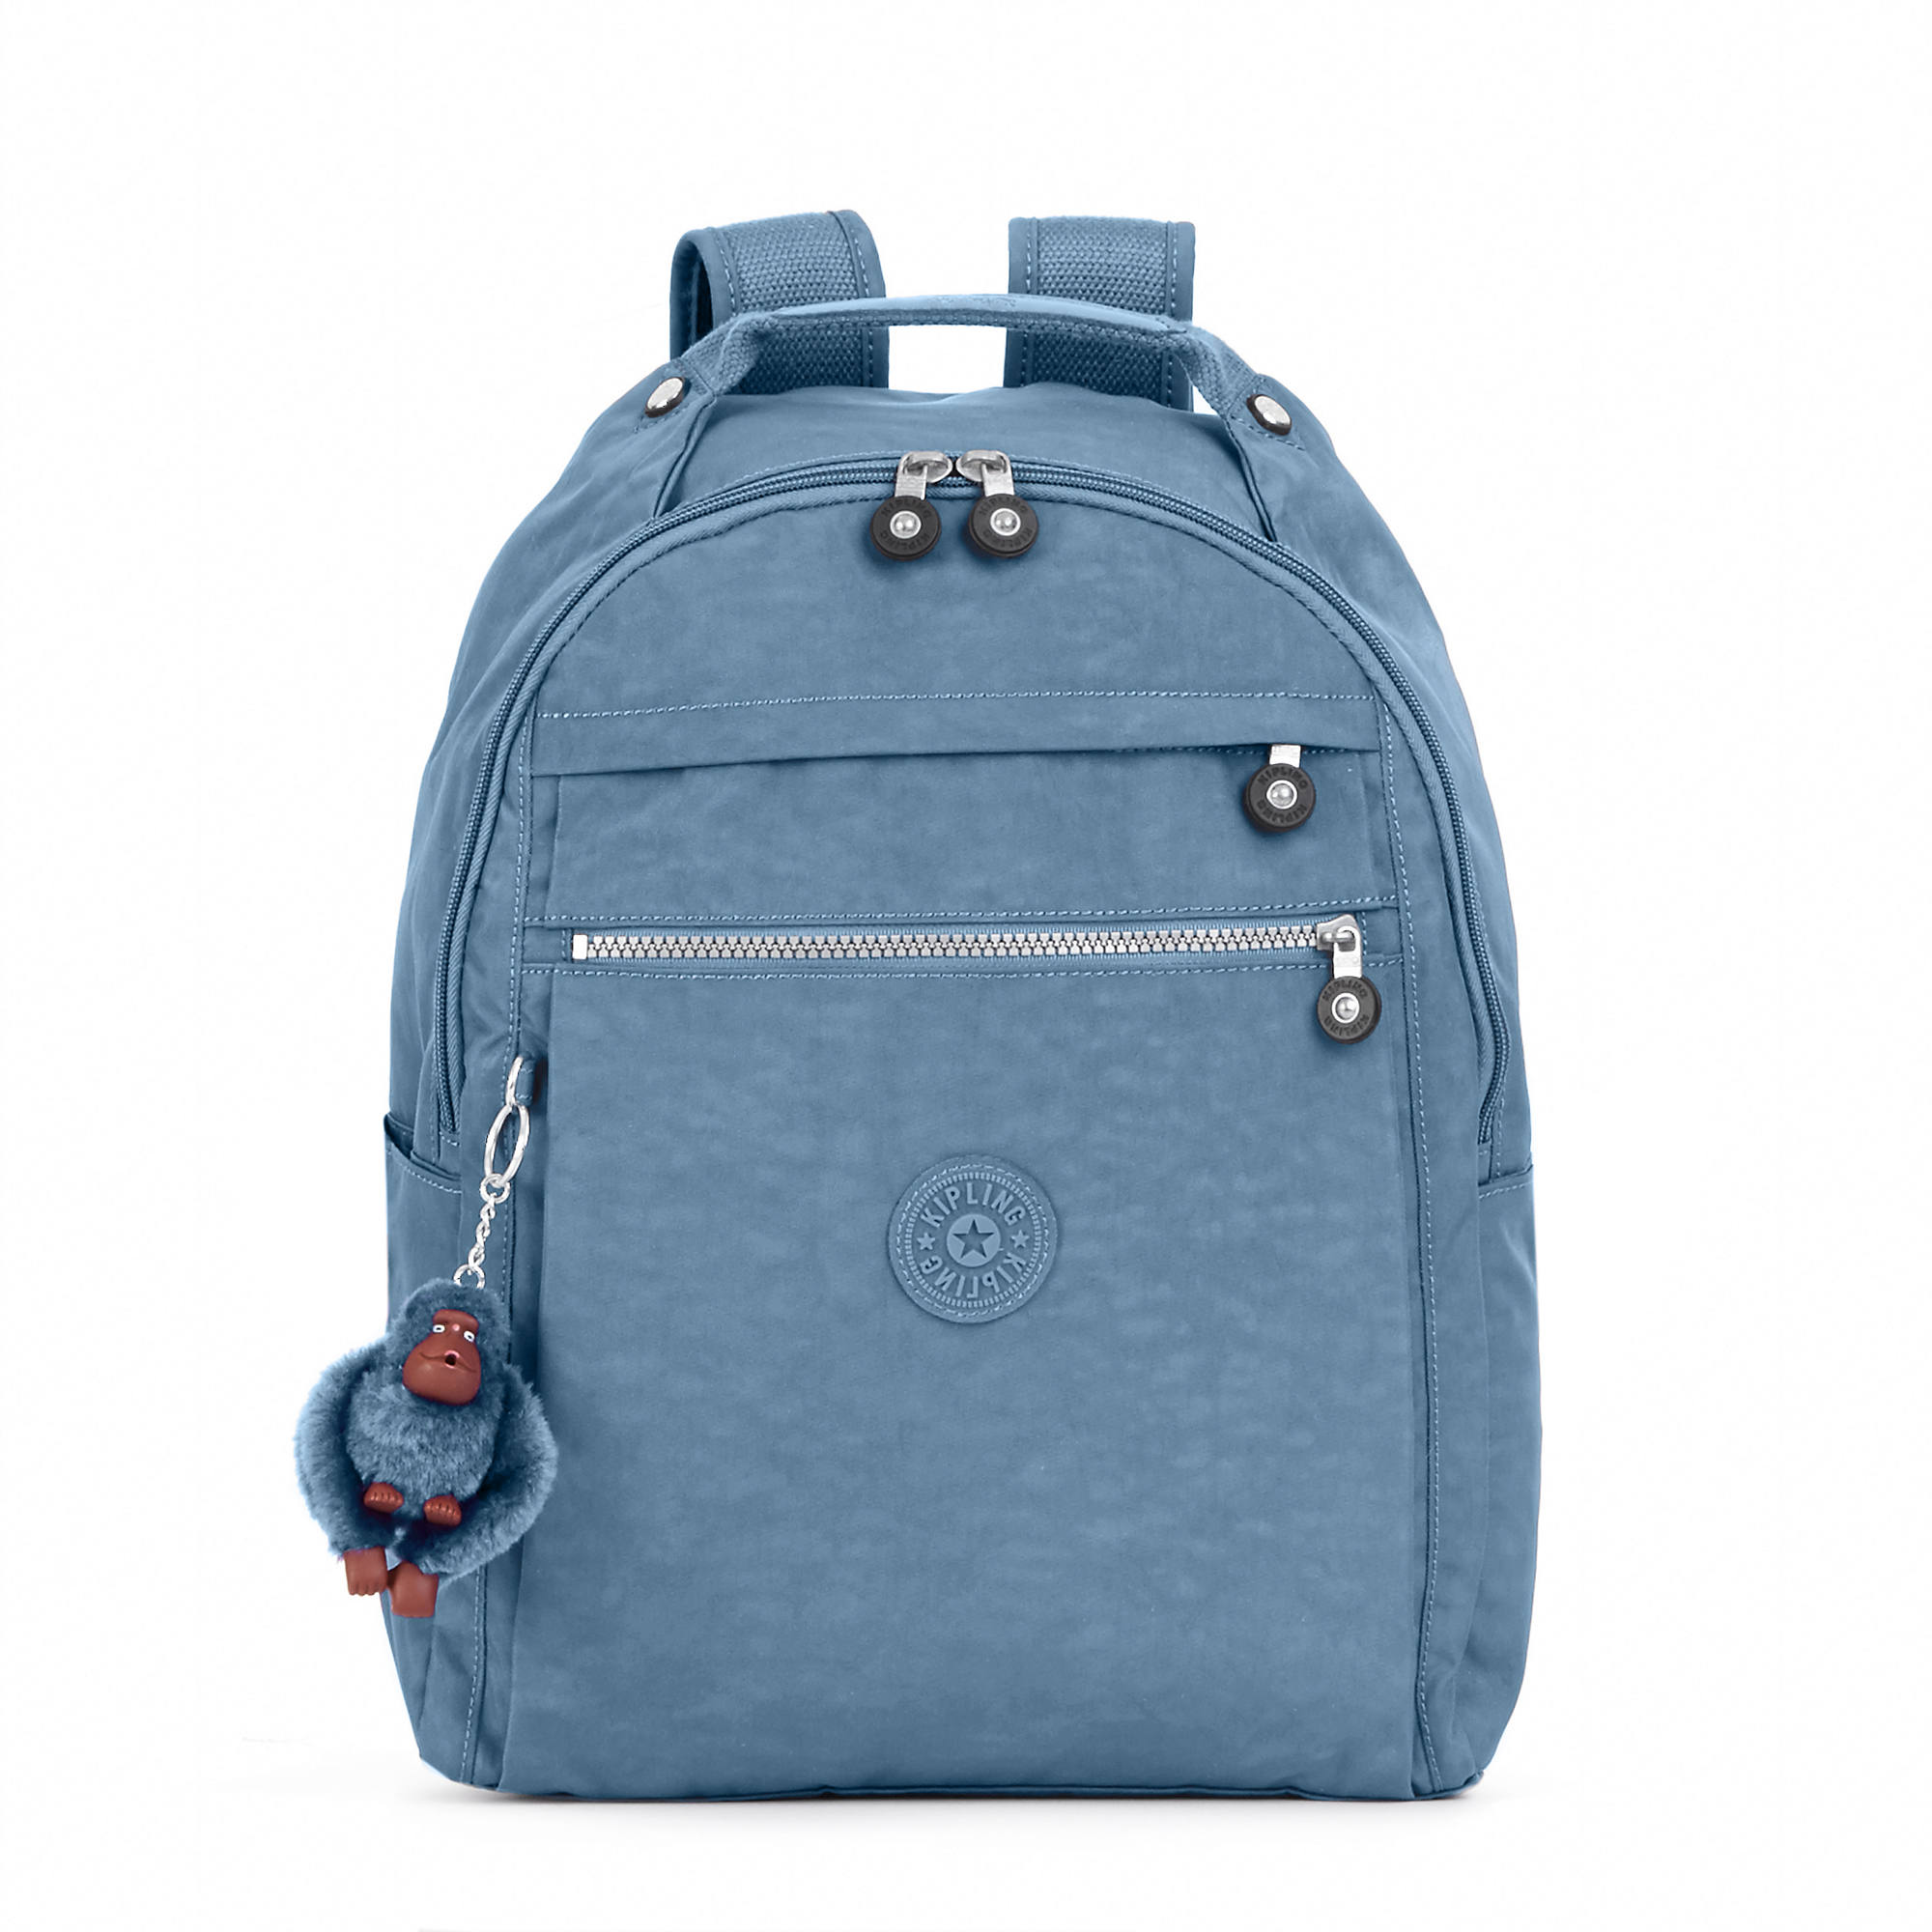 Buy Backpacks at Macy's and get FREE SHIPPING with $99 purchase! Shop for laptop backpack, leather backpack, rolling backpacks and designer backpacks.